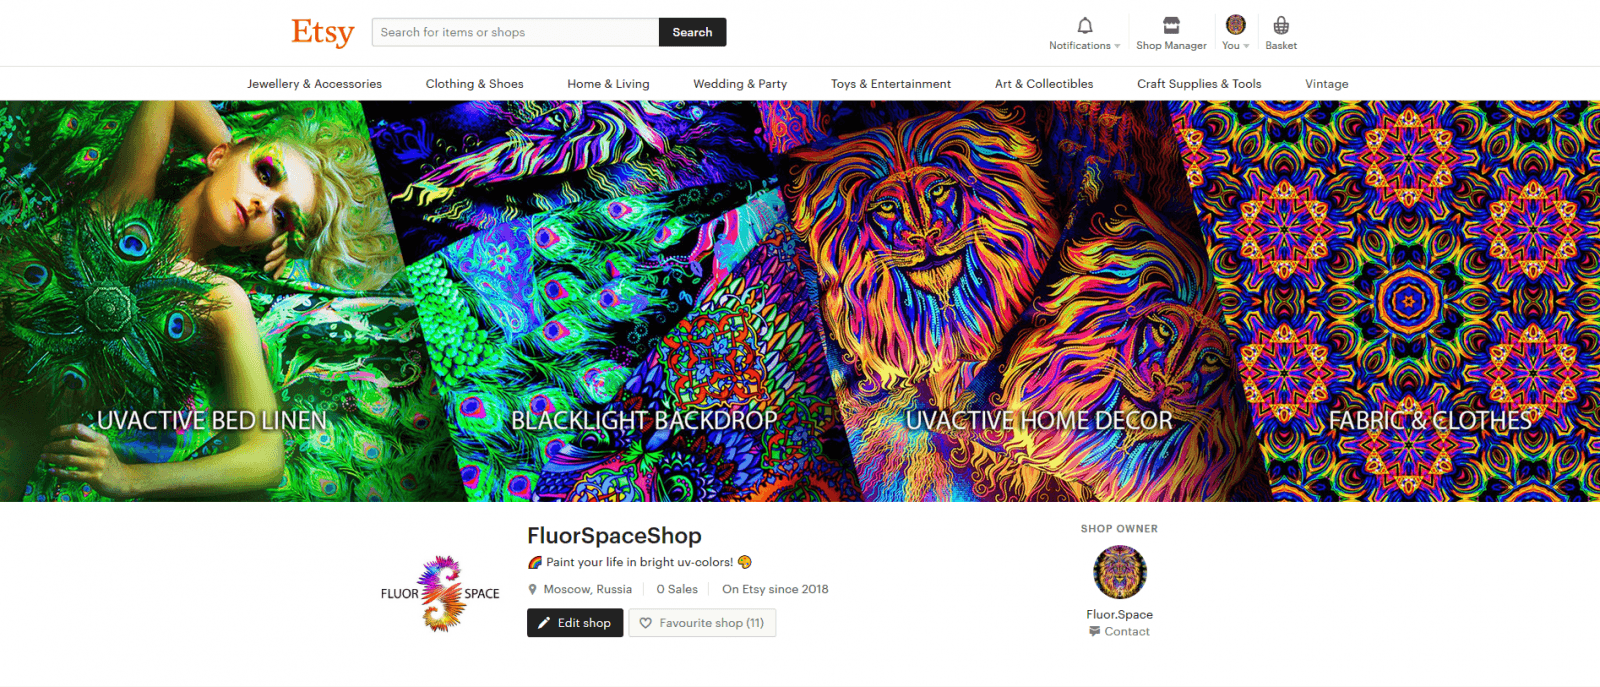 Fluor Space on Etsy